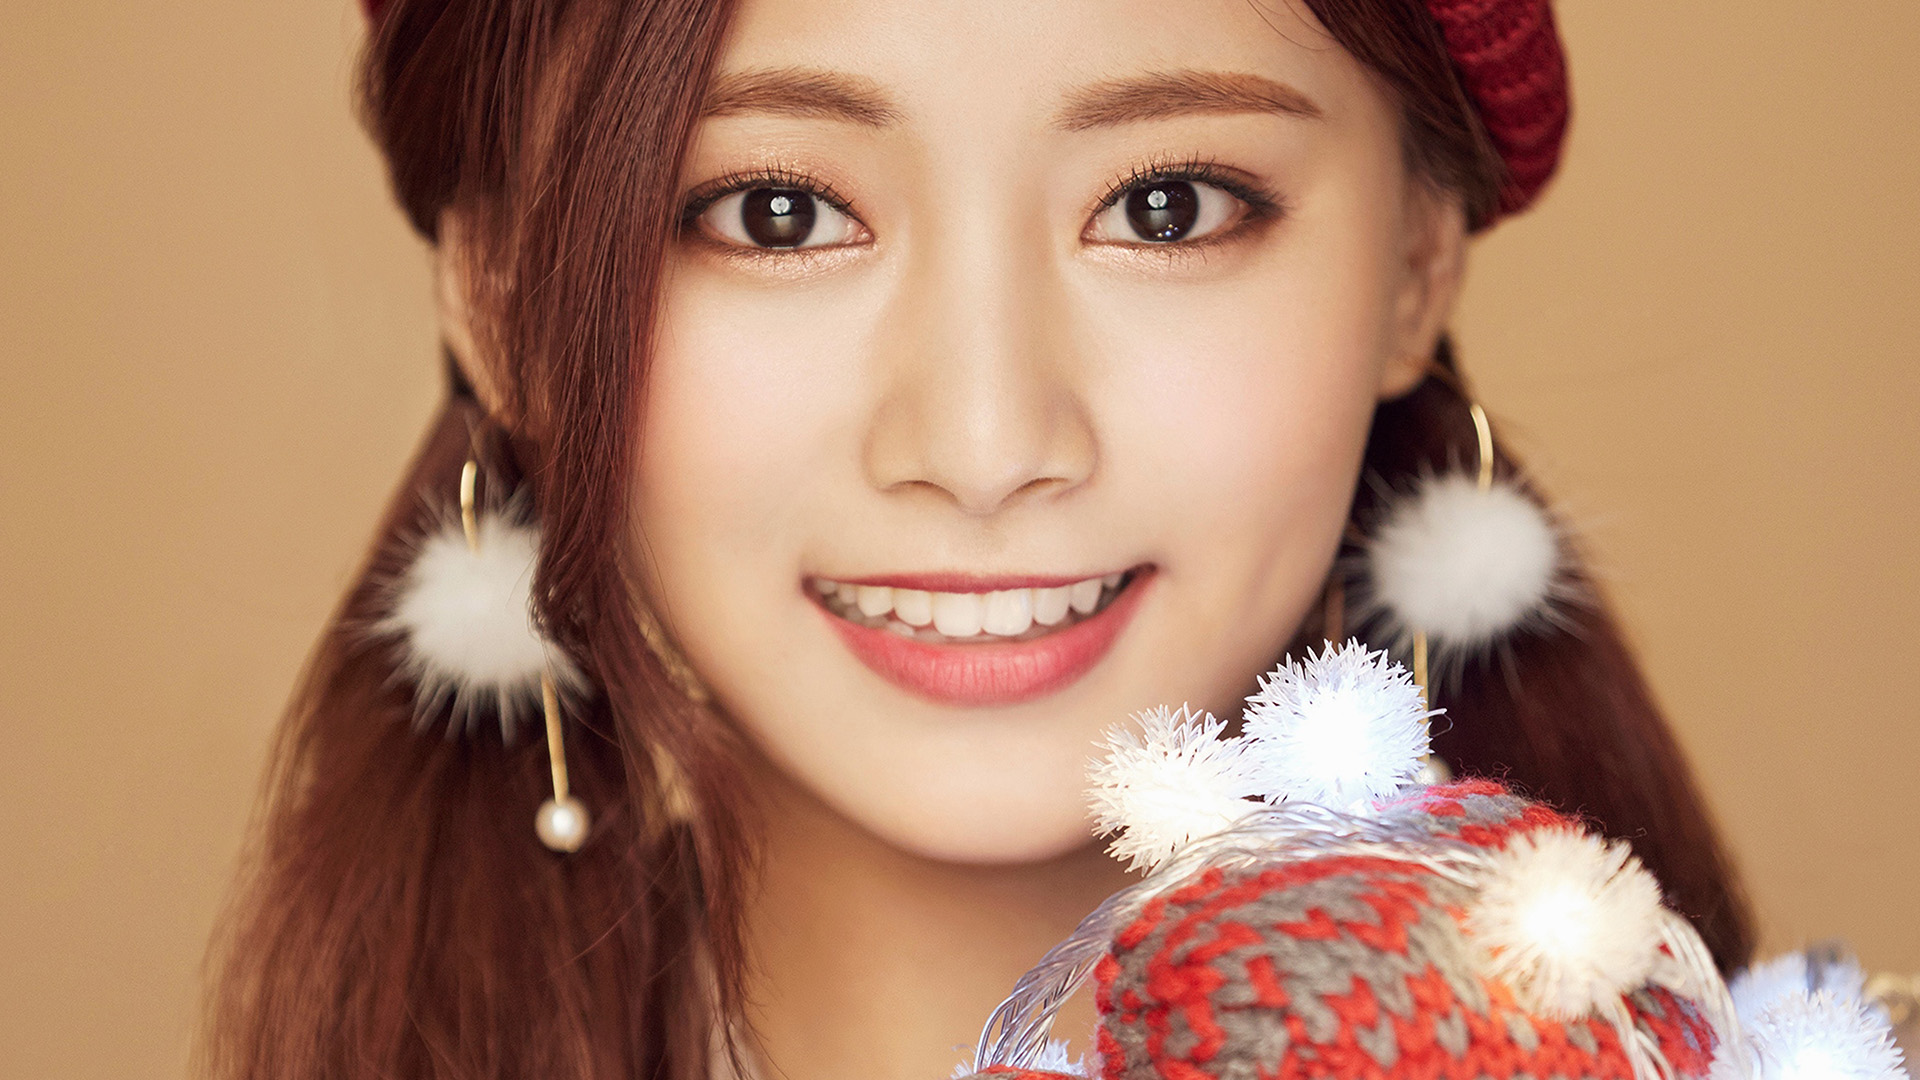 Wallpaper Macbook Air Fall Art Ho99 Christmas Girl Twice Tzuyu Happy Wallpaper